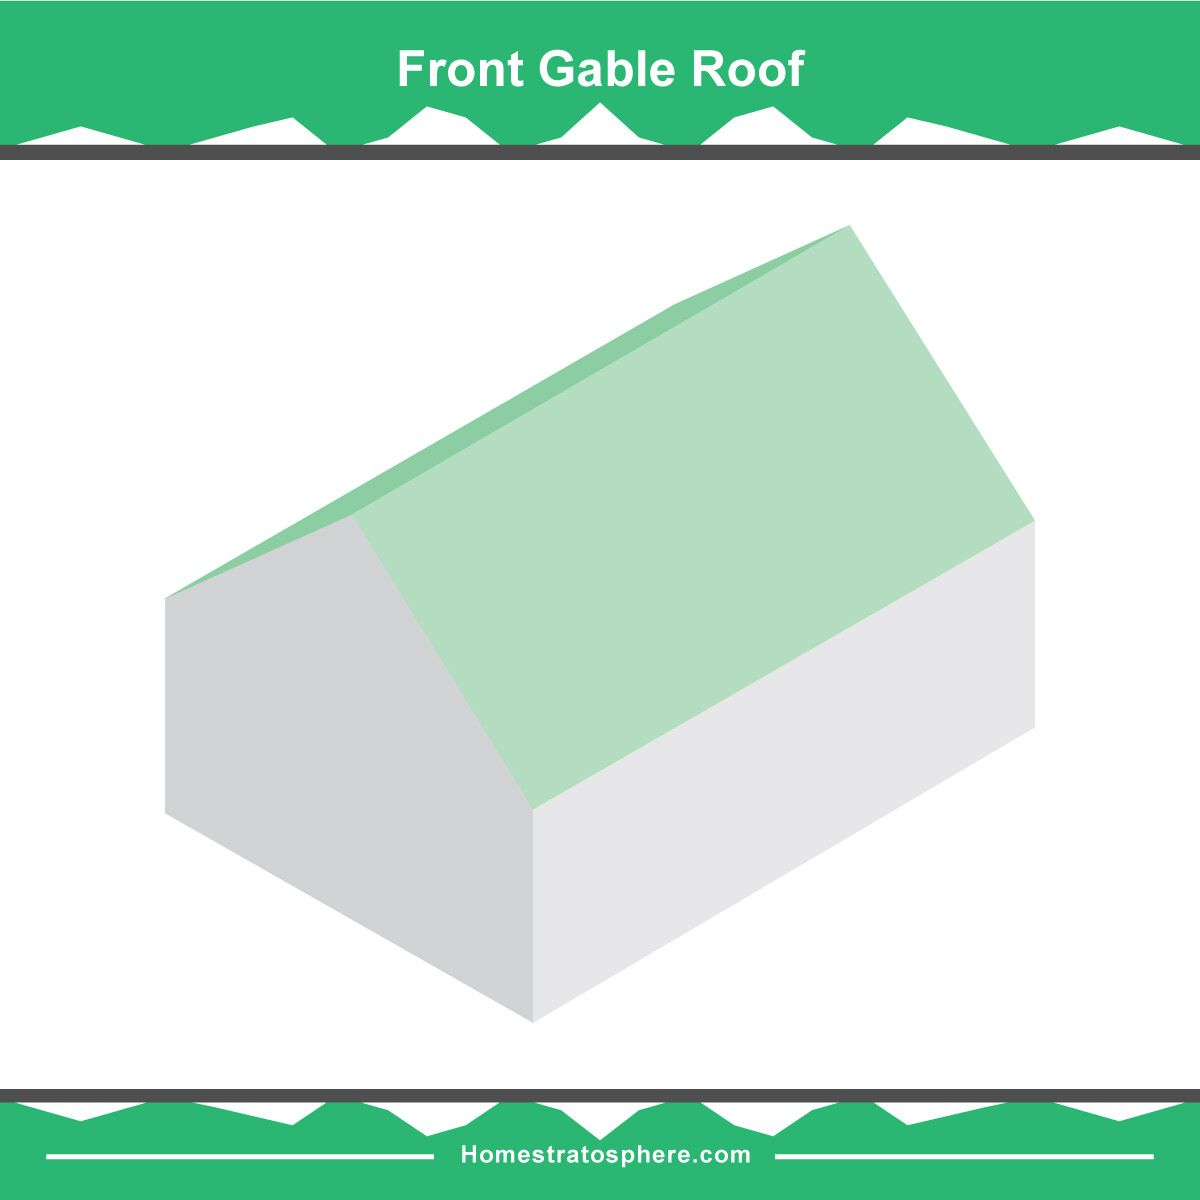 36 Types Of Roofs Styles For Houses Illustrated Roof Design Examples Roof Design Roof Styles Home Roof Design